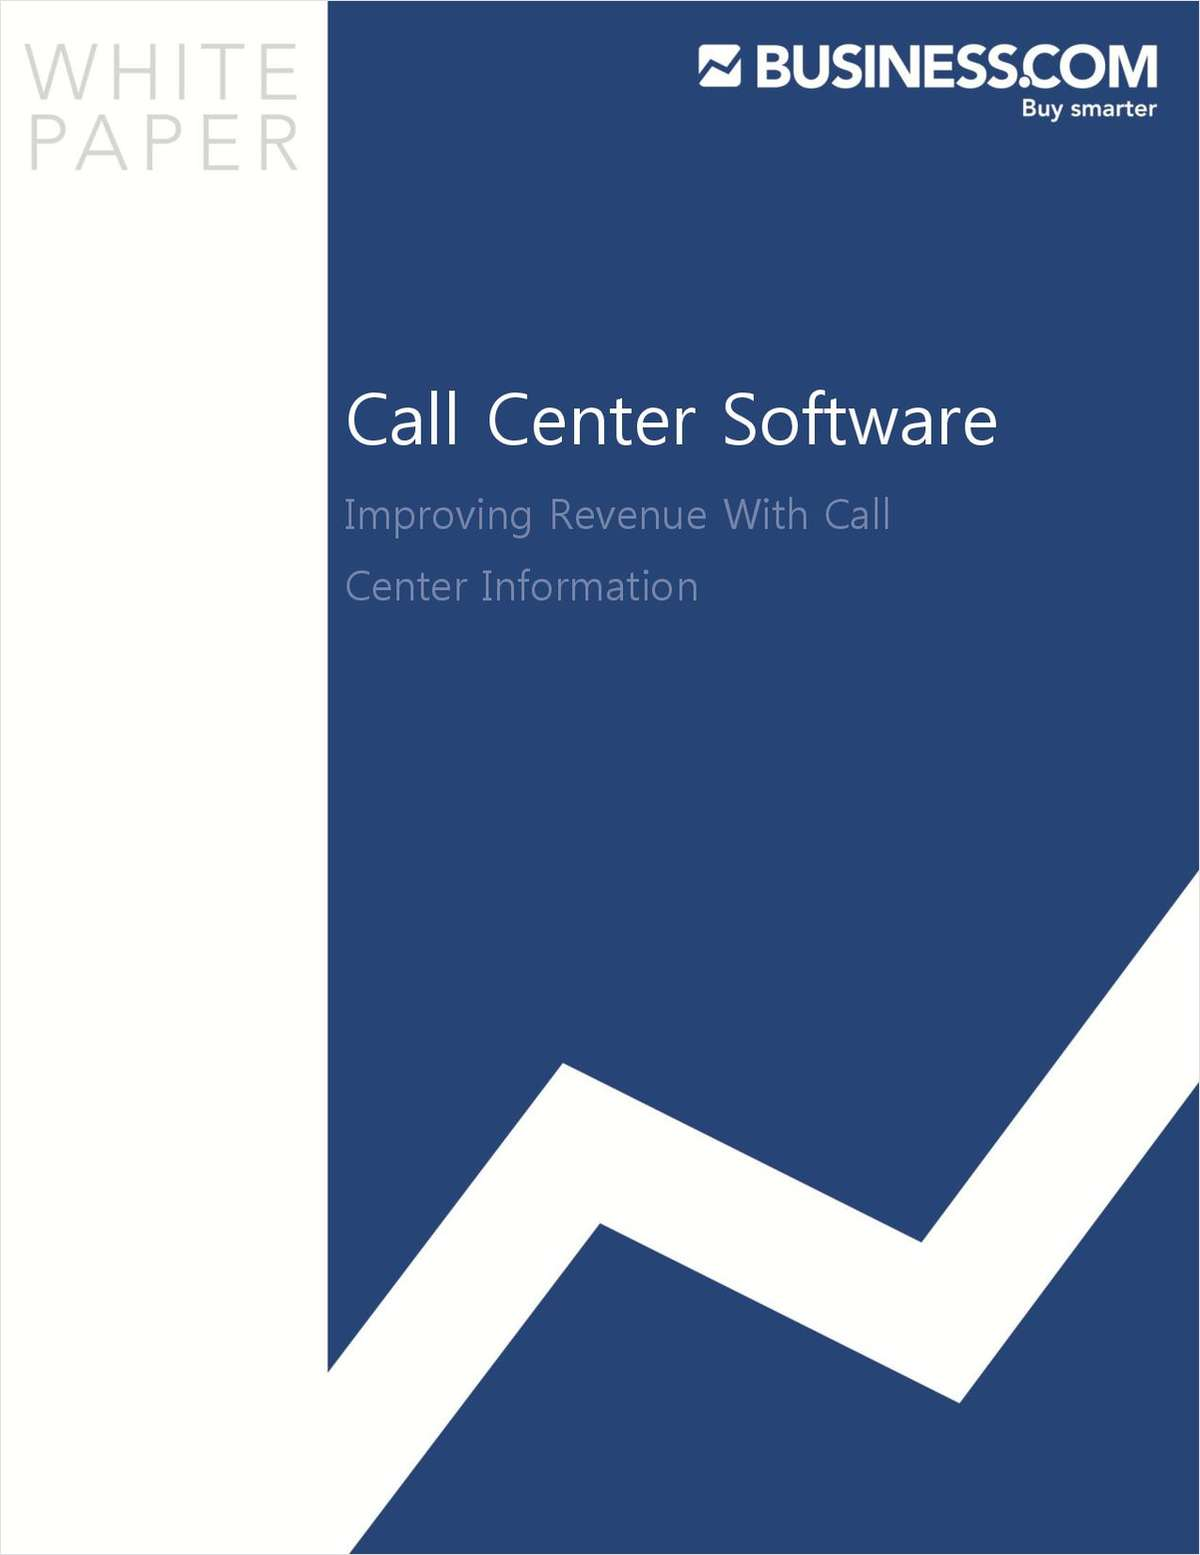 How to Choose the Right Call Center Software For Your Business